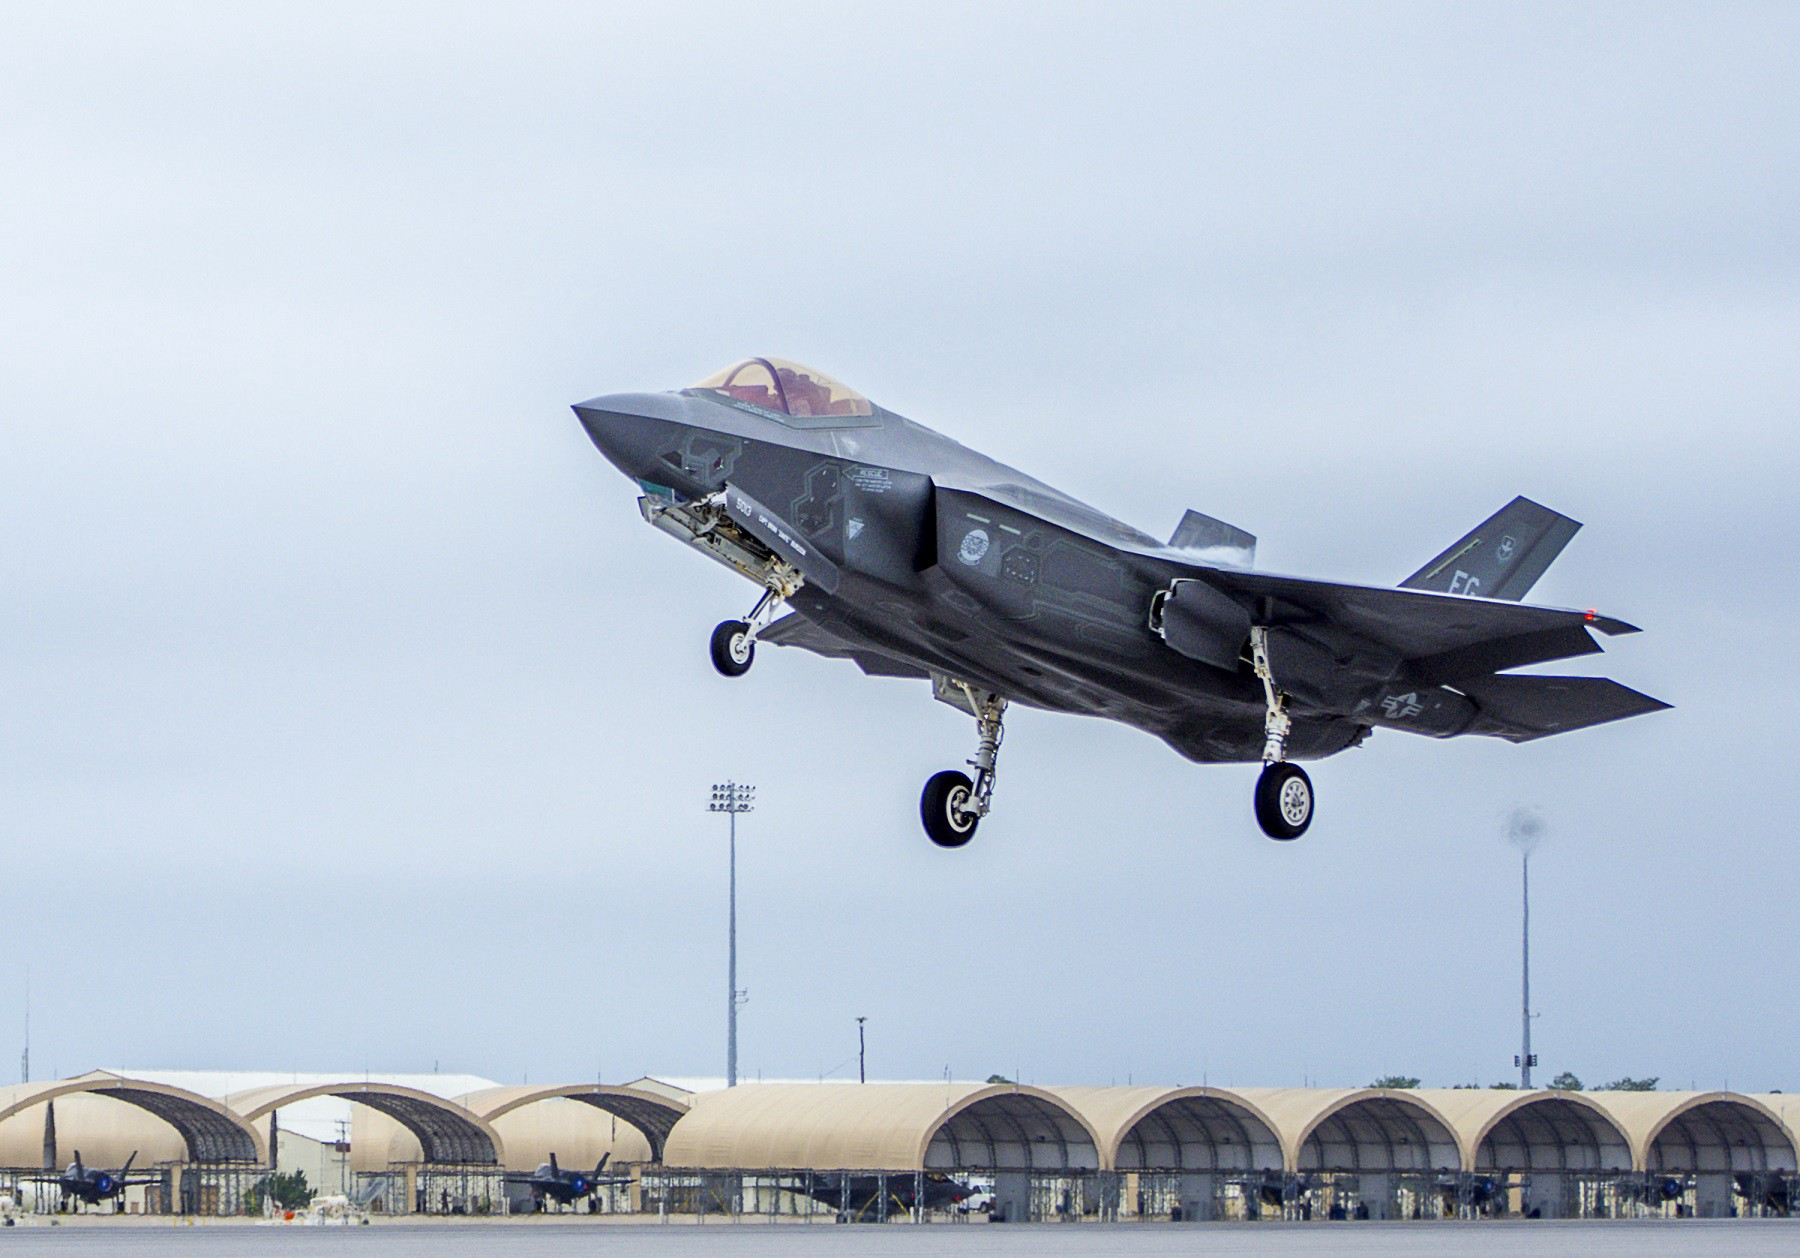 850afdc7f0254 An F-35A takes off from Eglin Air Forece Base in Florida on Feb. 27, 2017. U.S.  Air Force photo